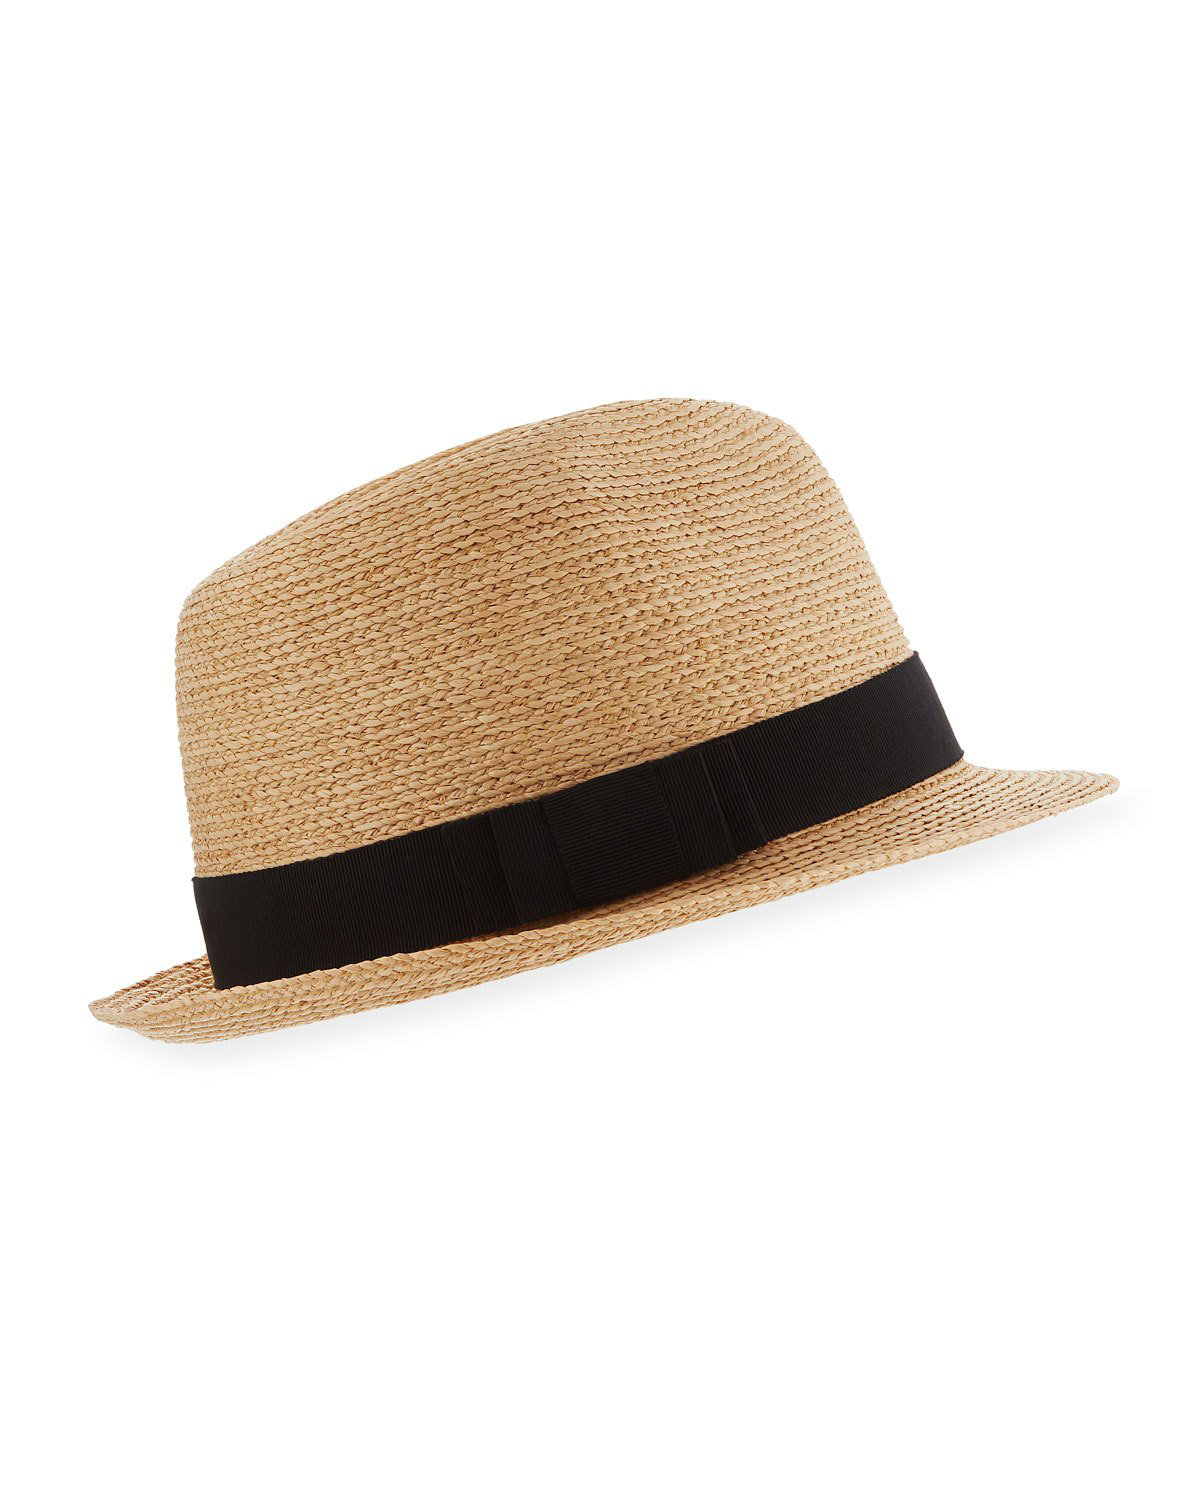 5e80f4186fe49 Helen Kaminski Wide Raffia Boater Hat - Grey In Nougat  Black